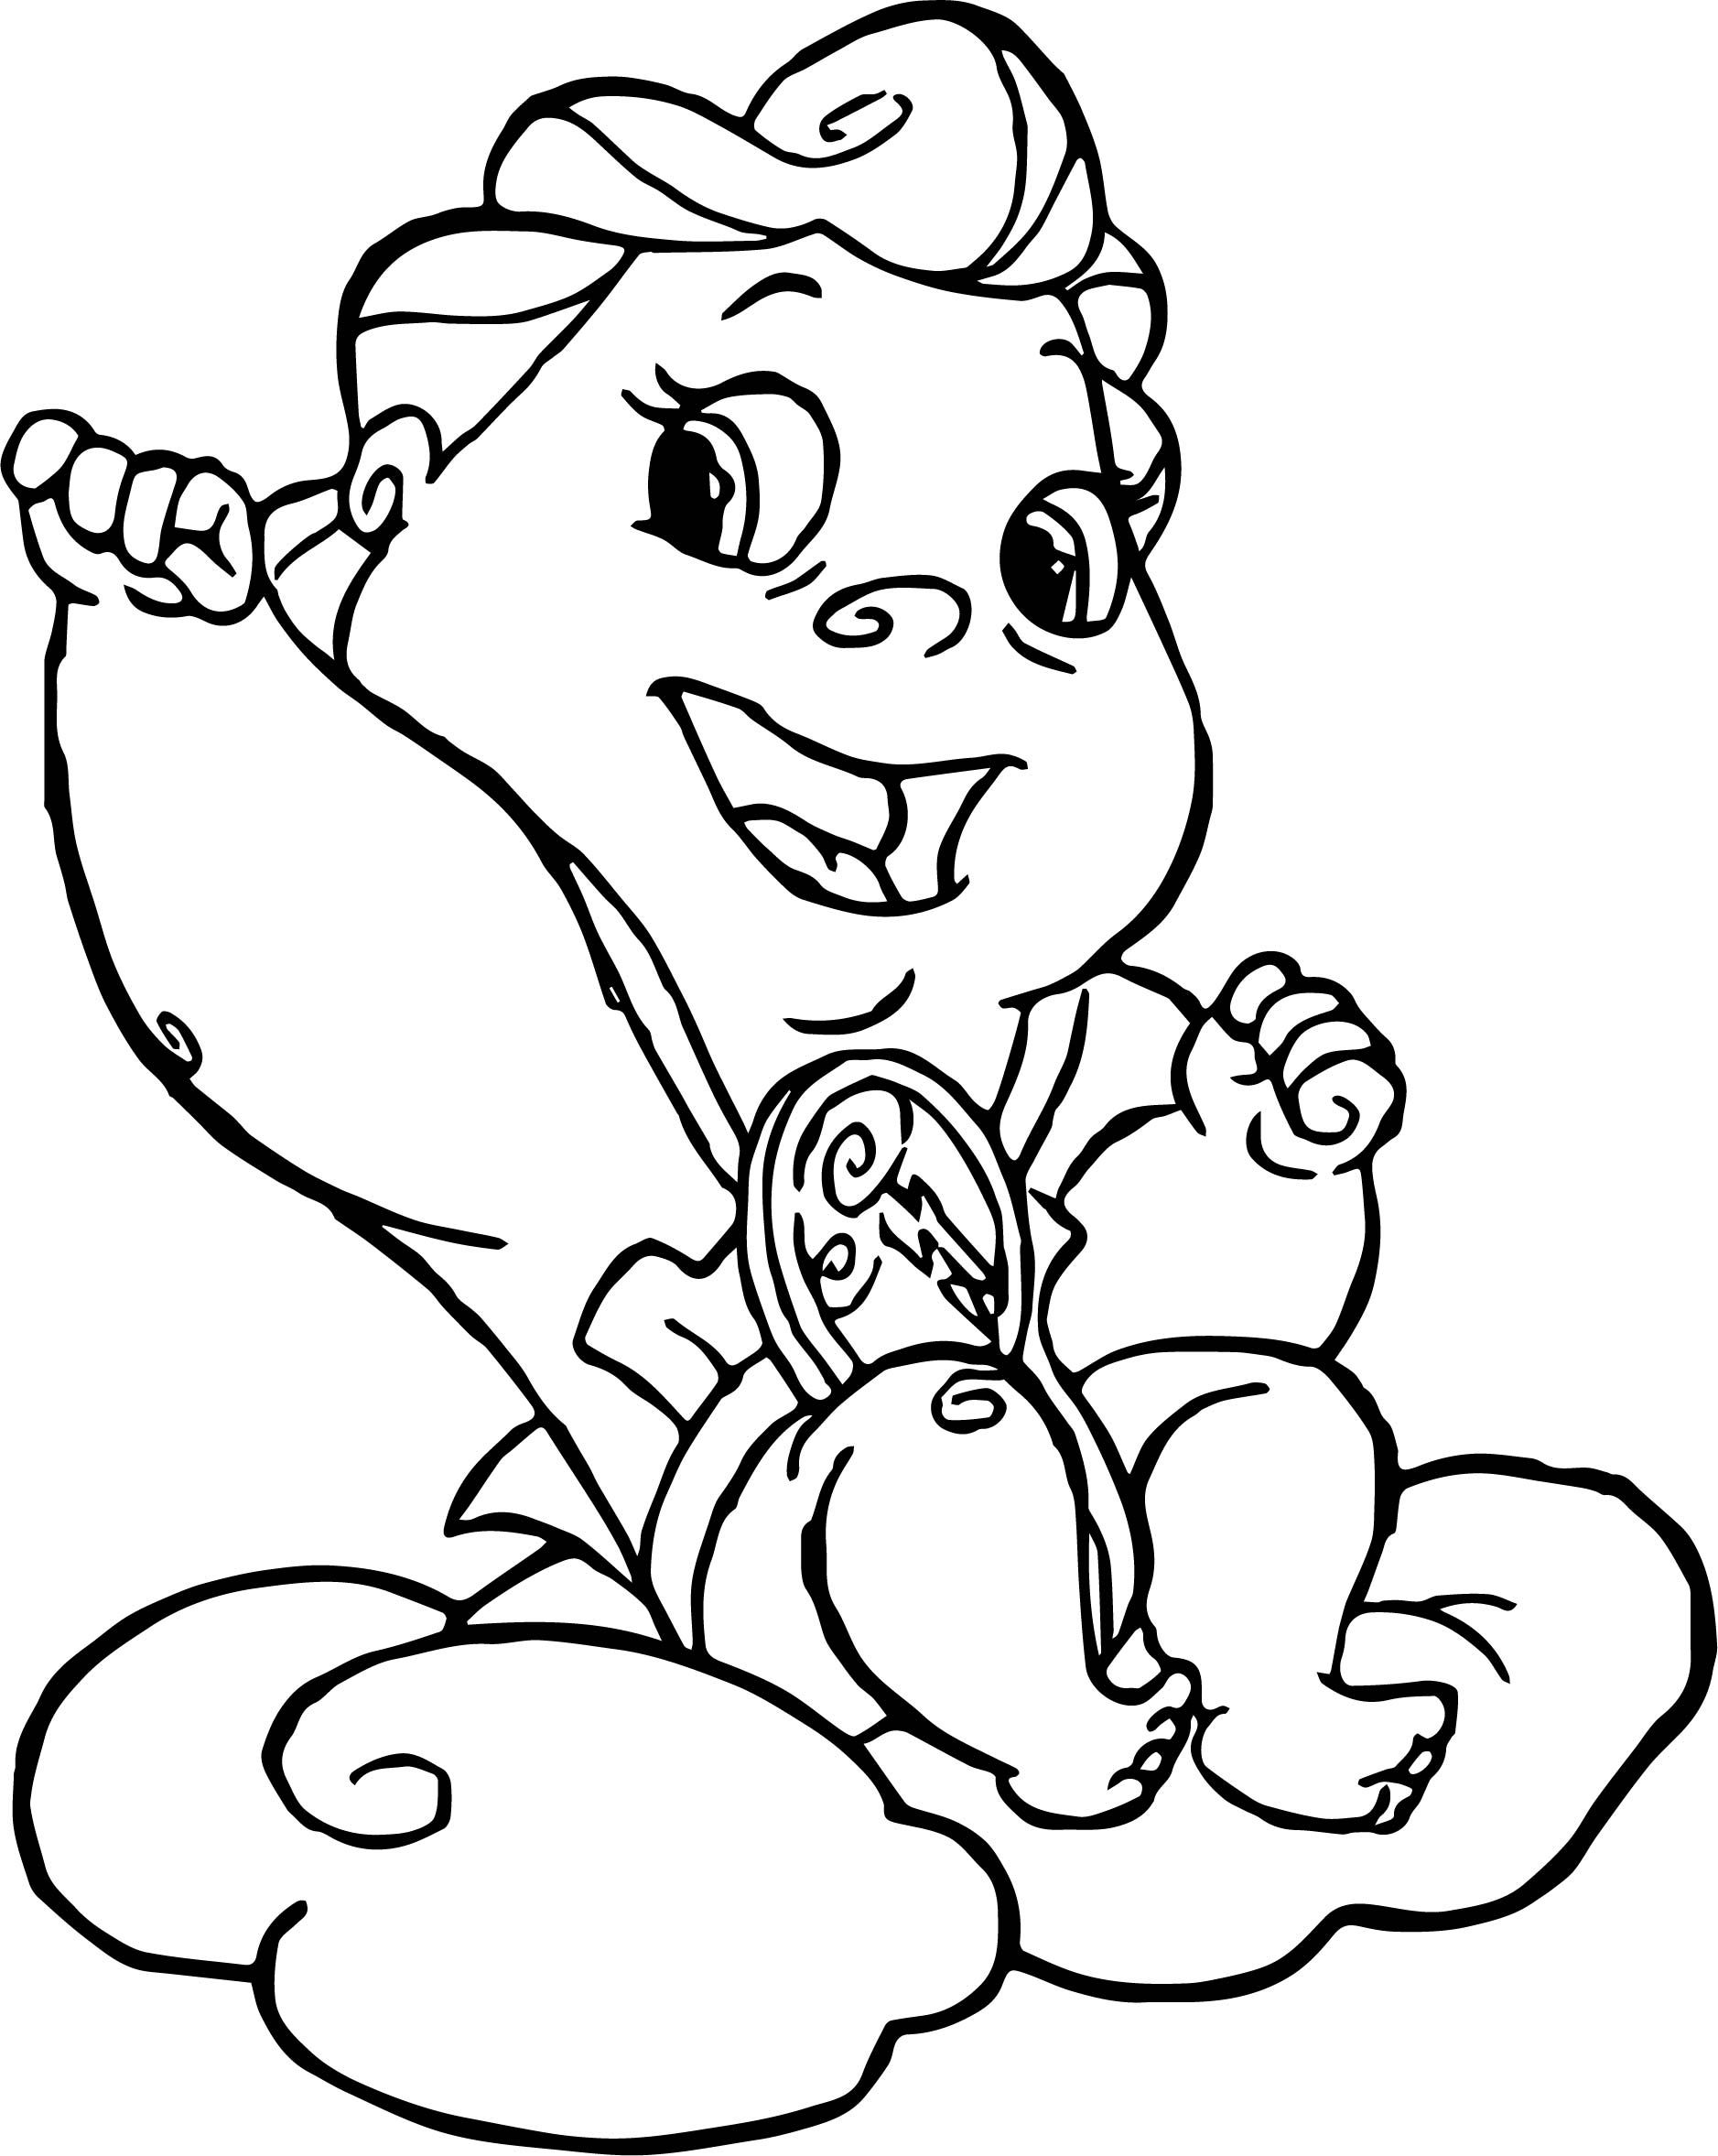 Awesome Baby Hercules And Baby Pegasus Give Coloring Pages Coloring Pages Free Printable Coloring Pages Printable Coloring Pages